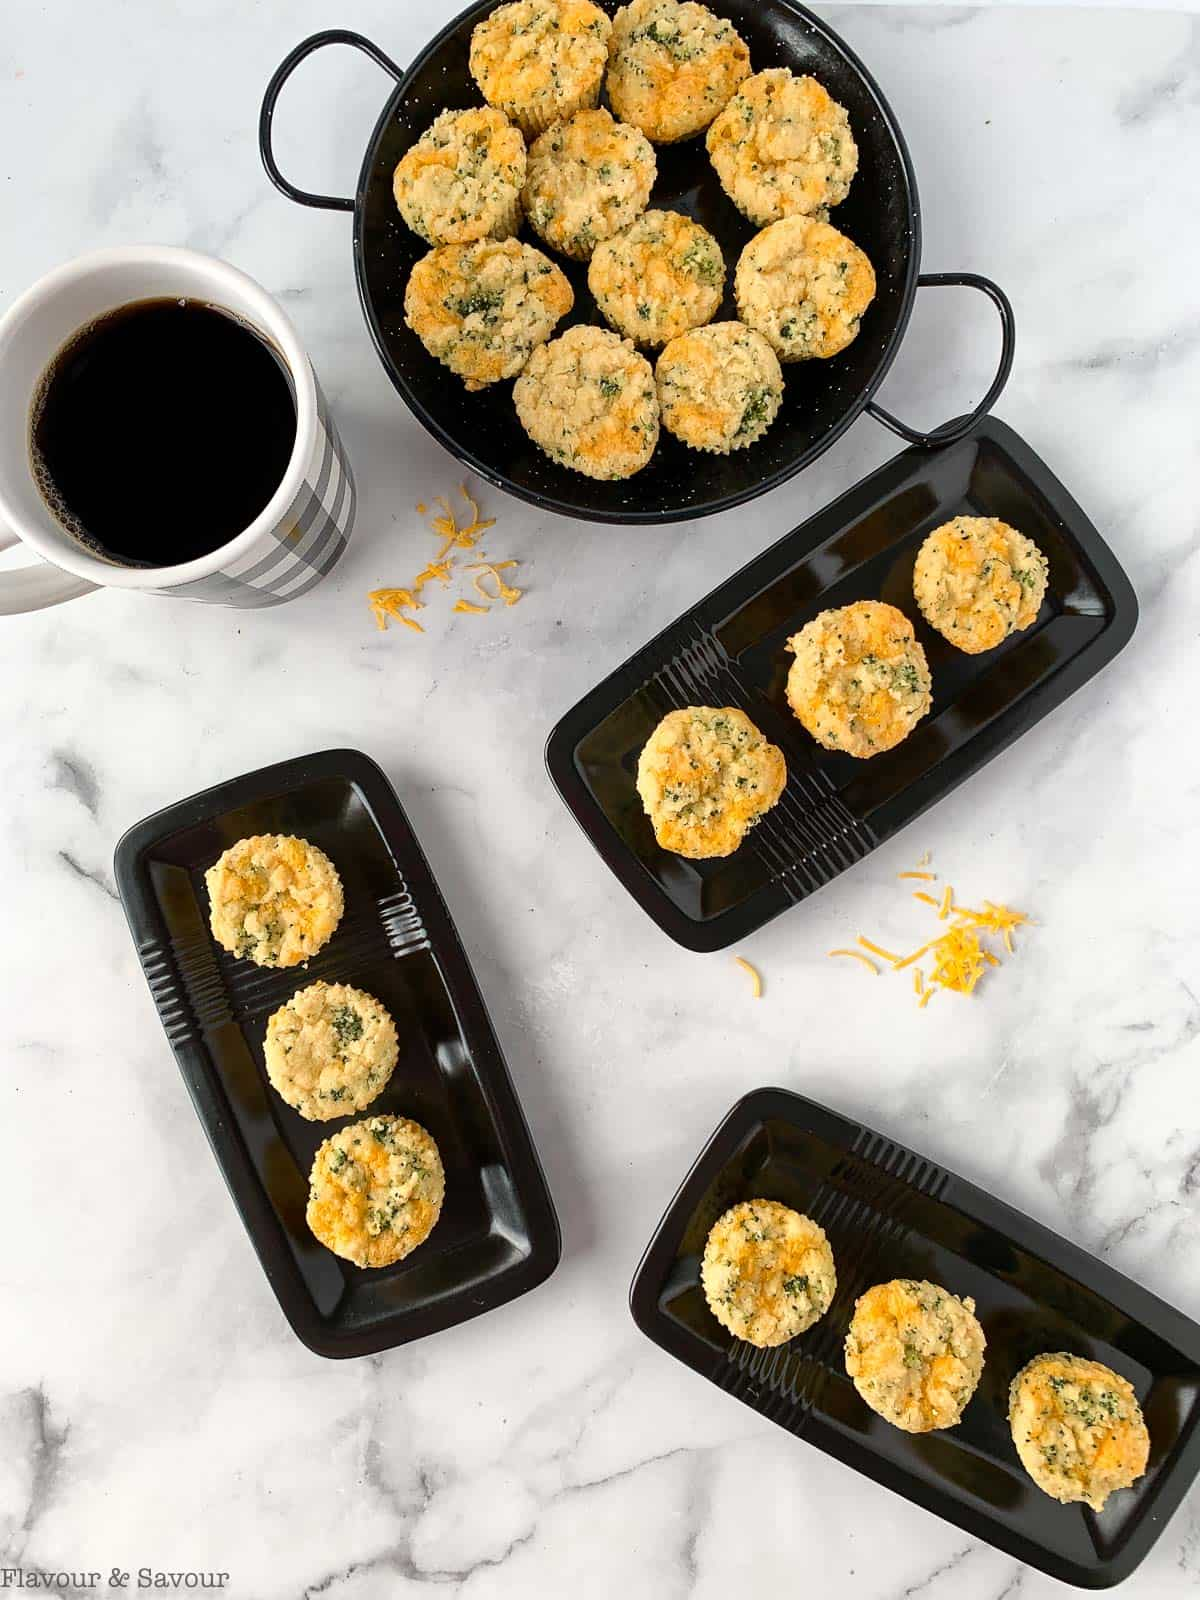 Gluten-free Broccoli Cheddar Muffins on small black serving plates.